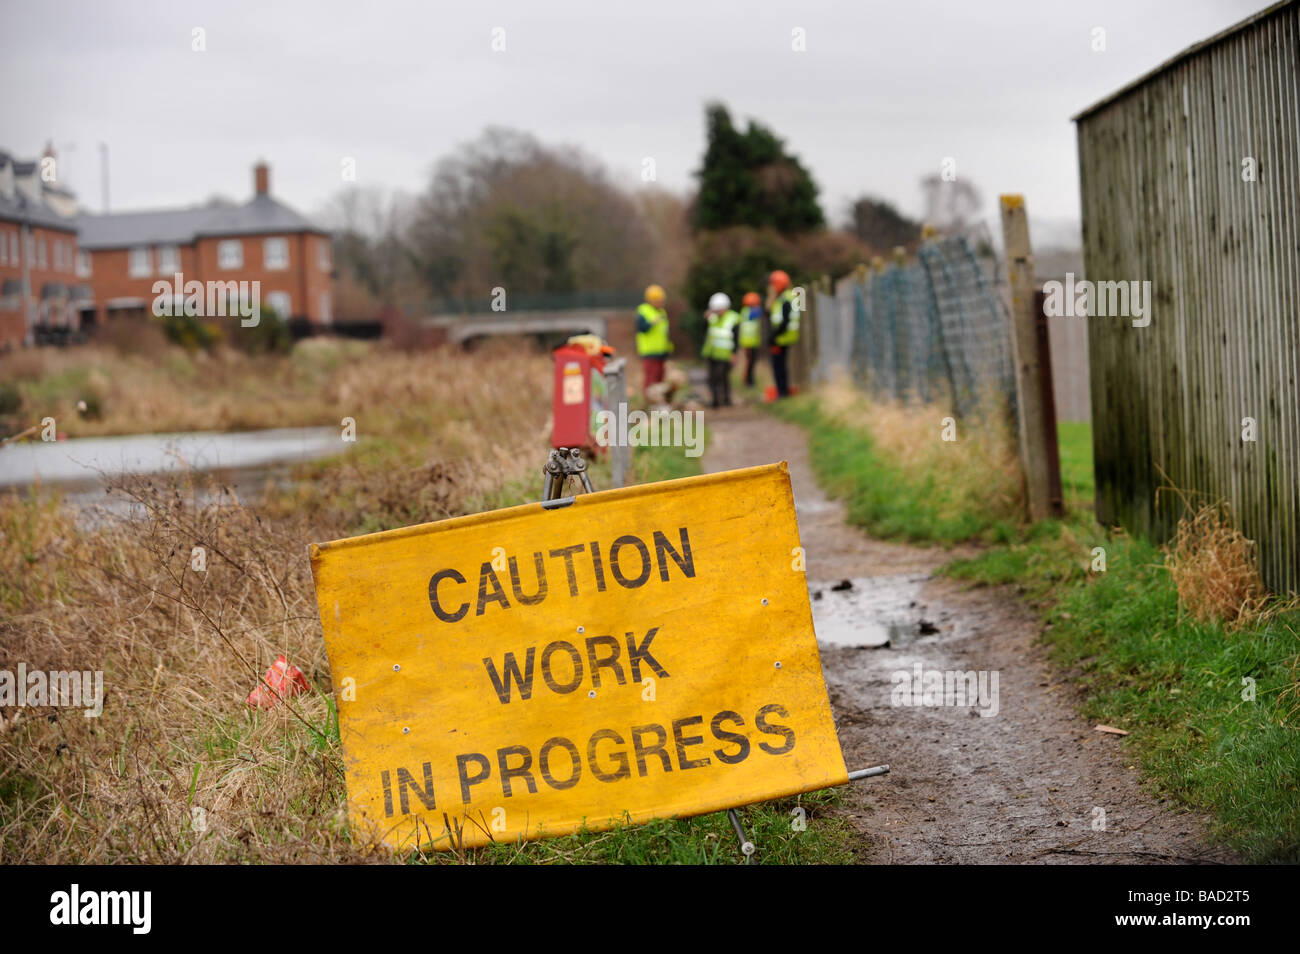 WARNING SIGN FOR A WORK PARTY FROM THE COTSWOLD CANALS TRUST CLEARING TREES FROM THE TOW PATH AT STONEHOUSE AS PART - Stock Image